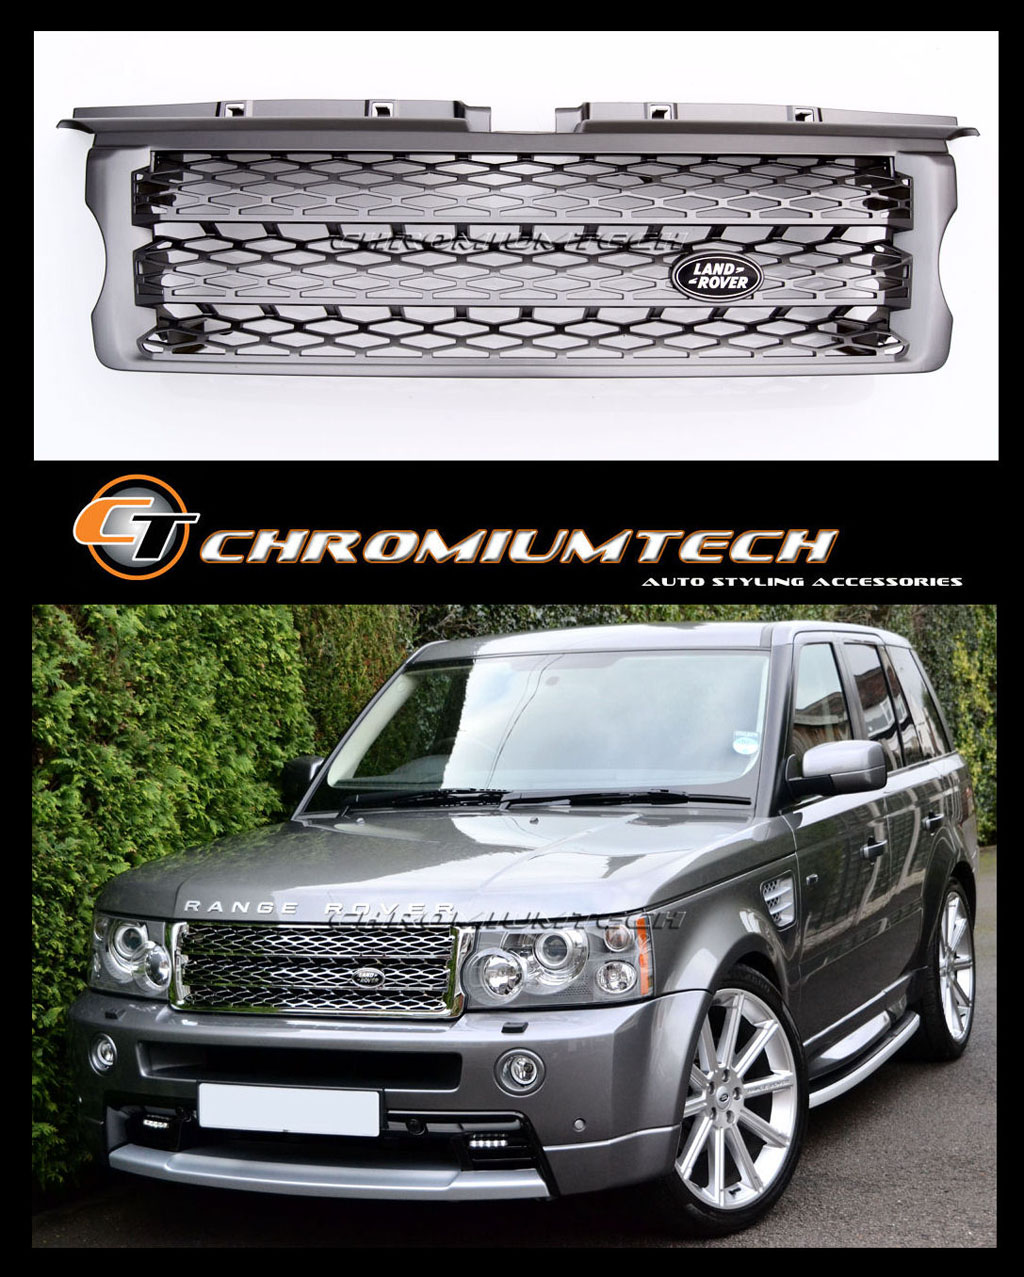 2005-09 Range Rover SPORT GREY Grill Supercharged 2010